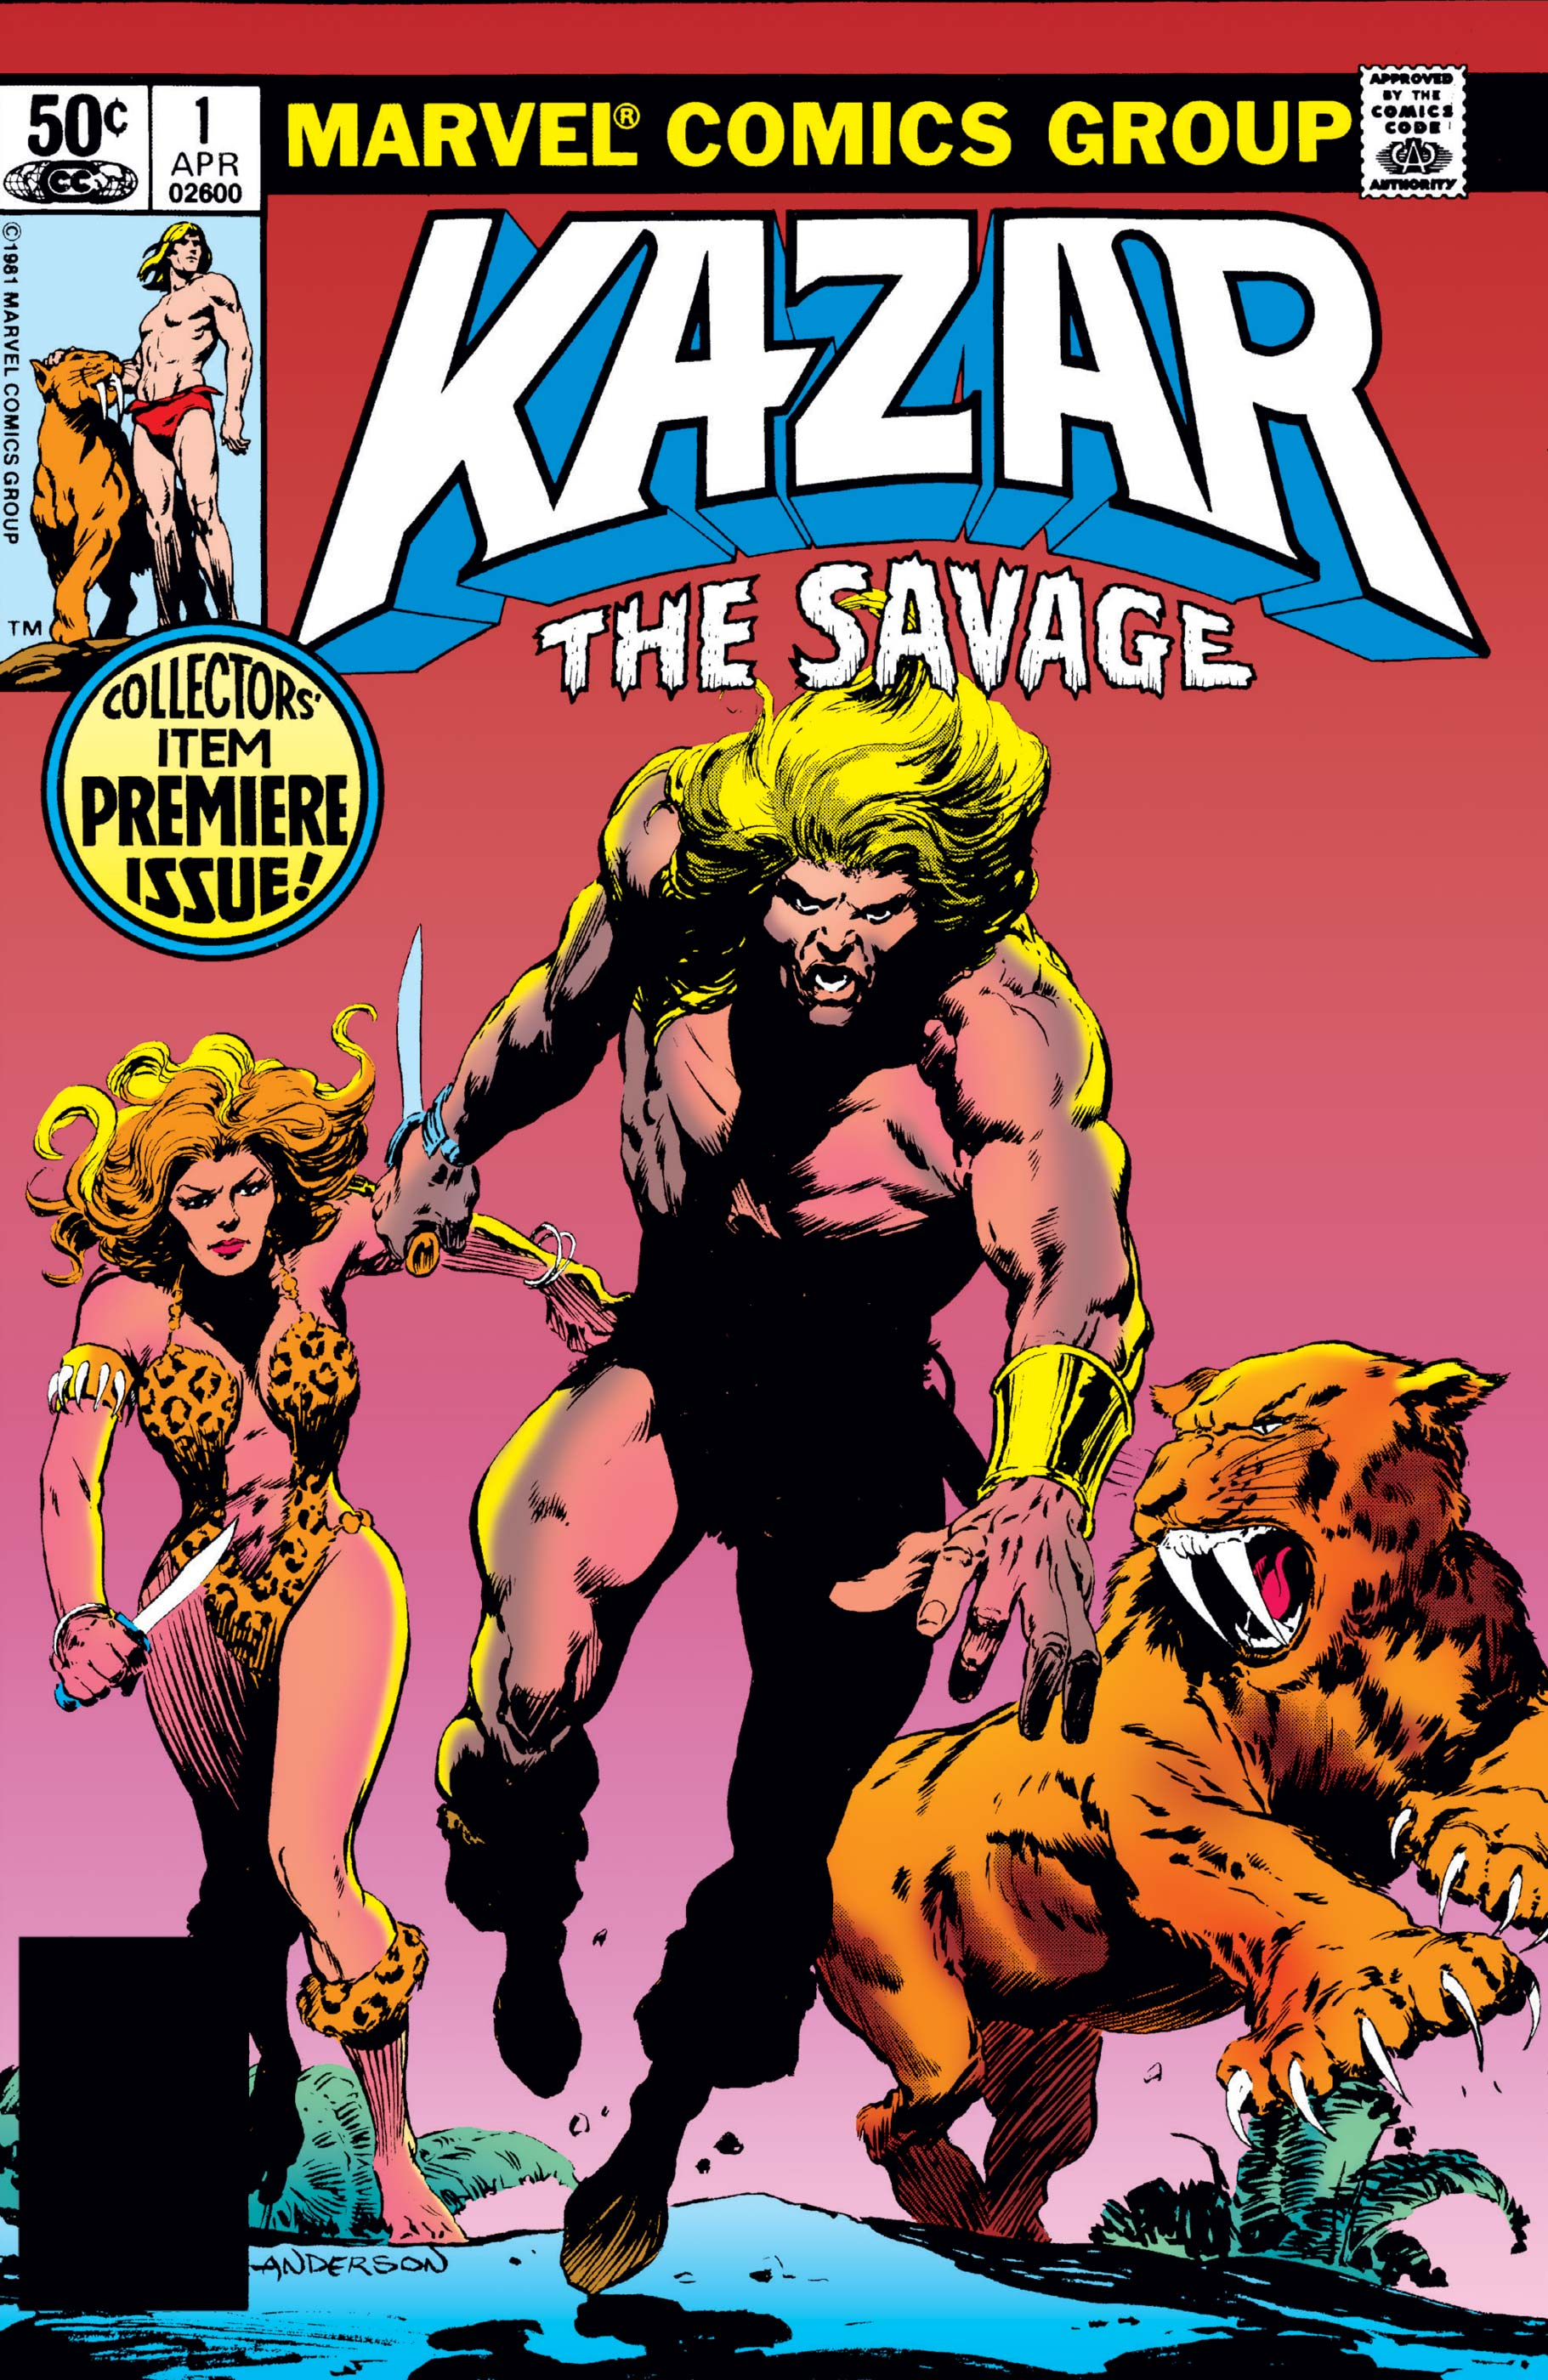 Ka-Zar the Savage (1981) #1